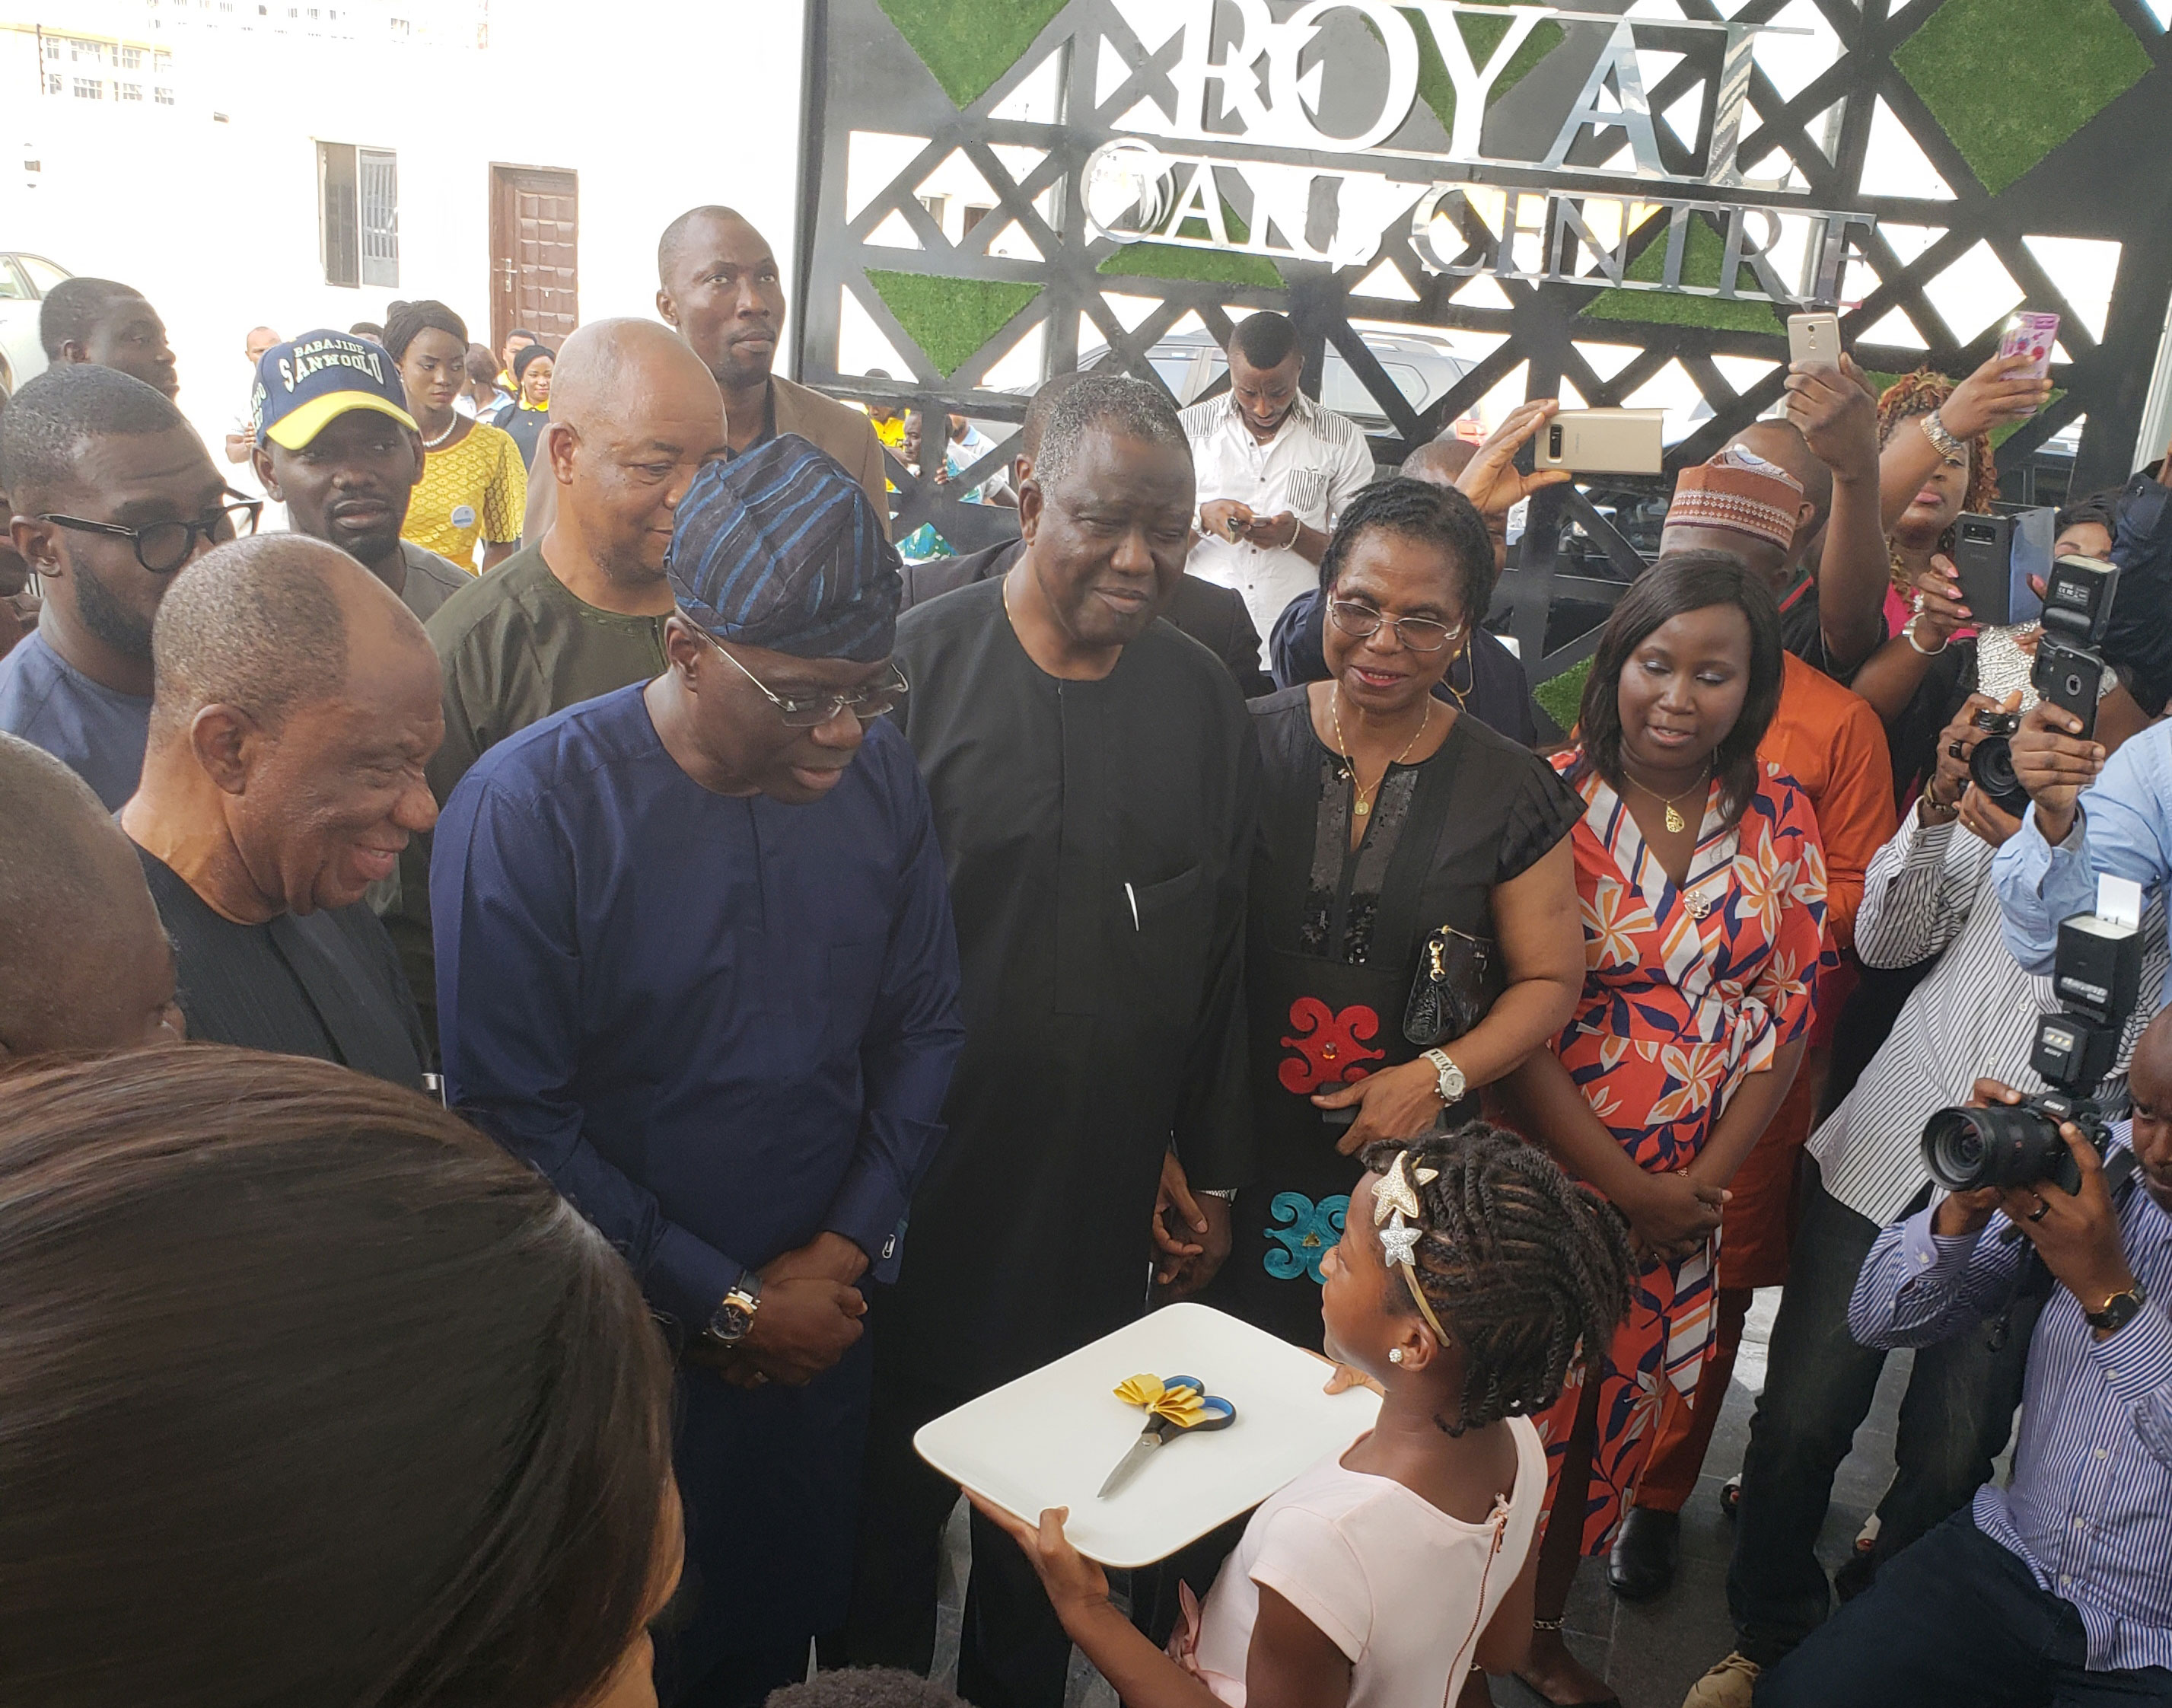 Sanwo-Olu declares Royal Oaks Events Centre Open in Lagos